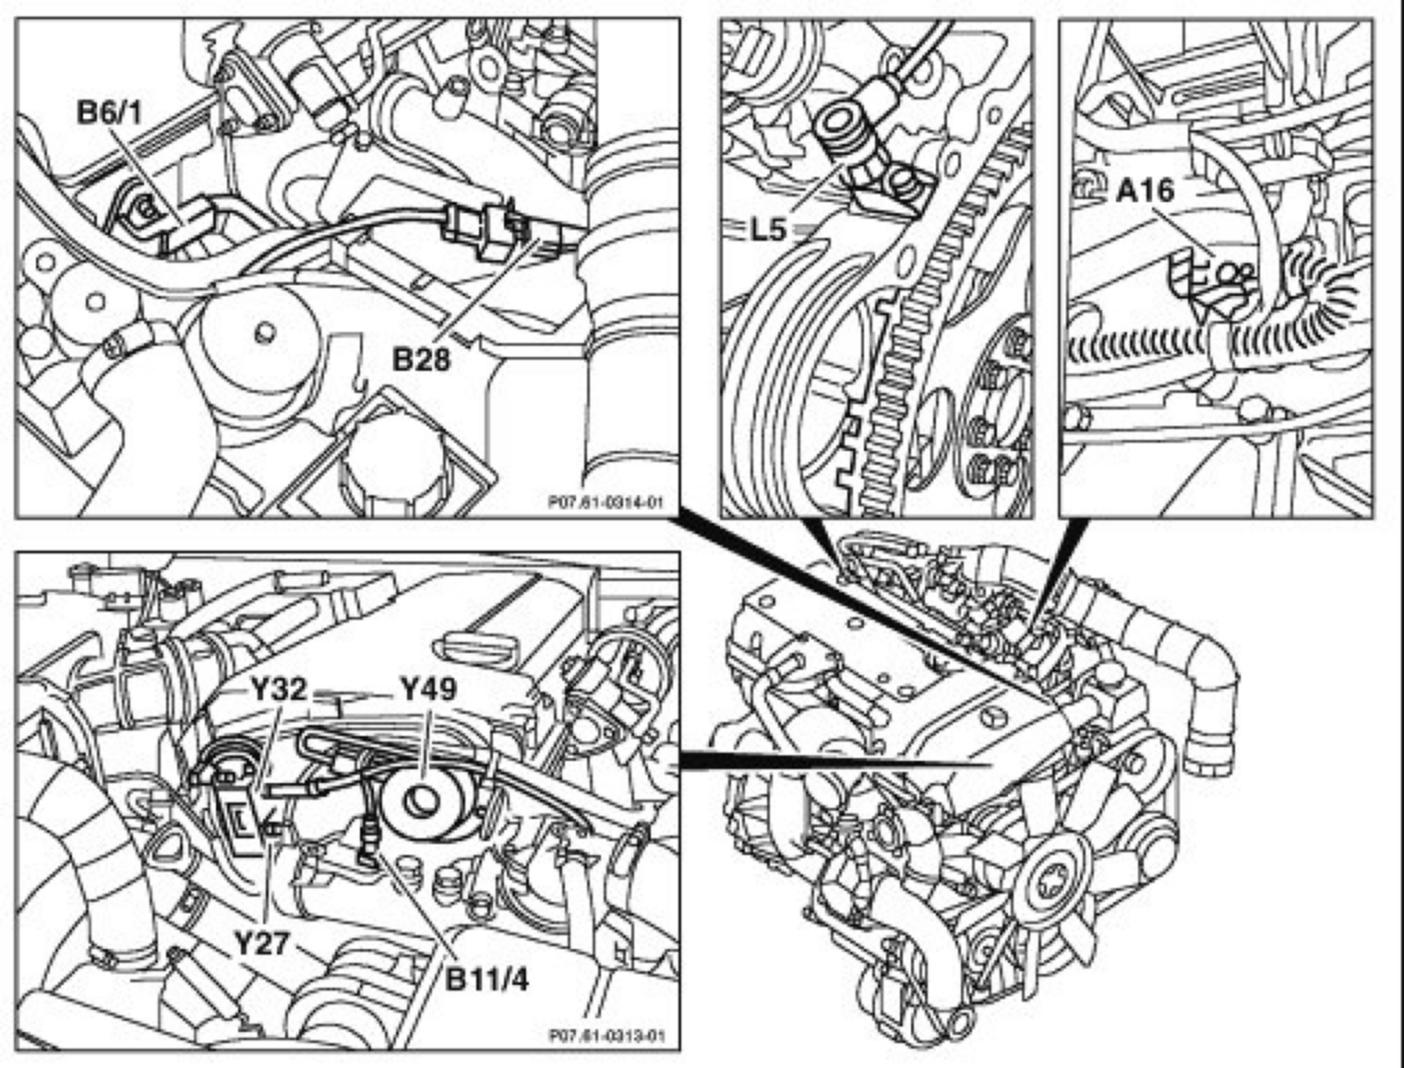 2003 Mercedes C230 Engine Diagram Wiring For Light Switch 2007 Sport Fuse Box On Replaced Mafs Passed All Test But The Rh Justanswer Com 1999 Ml430 Of 2001 E320